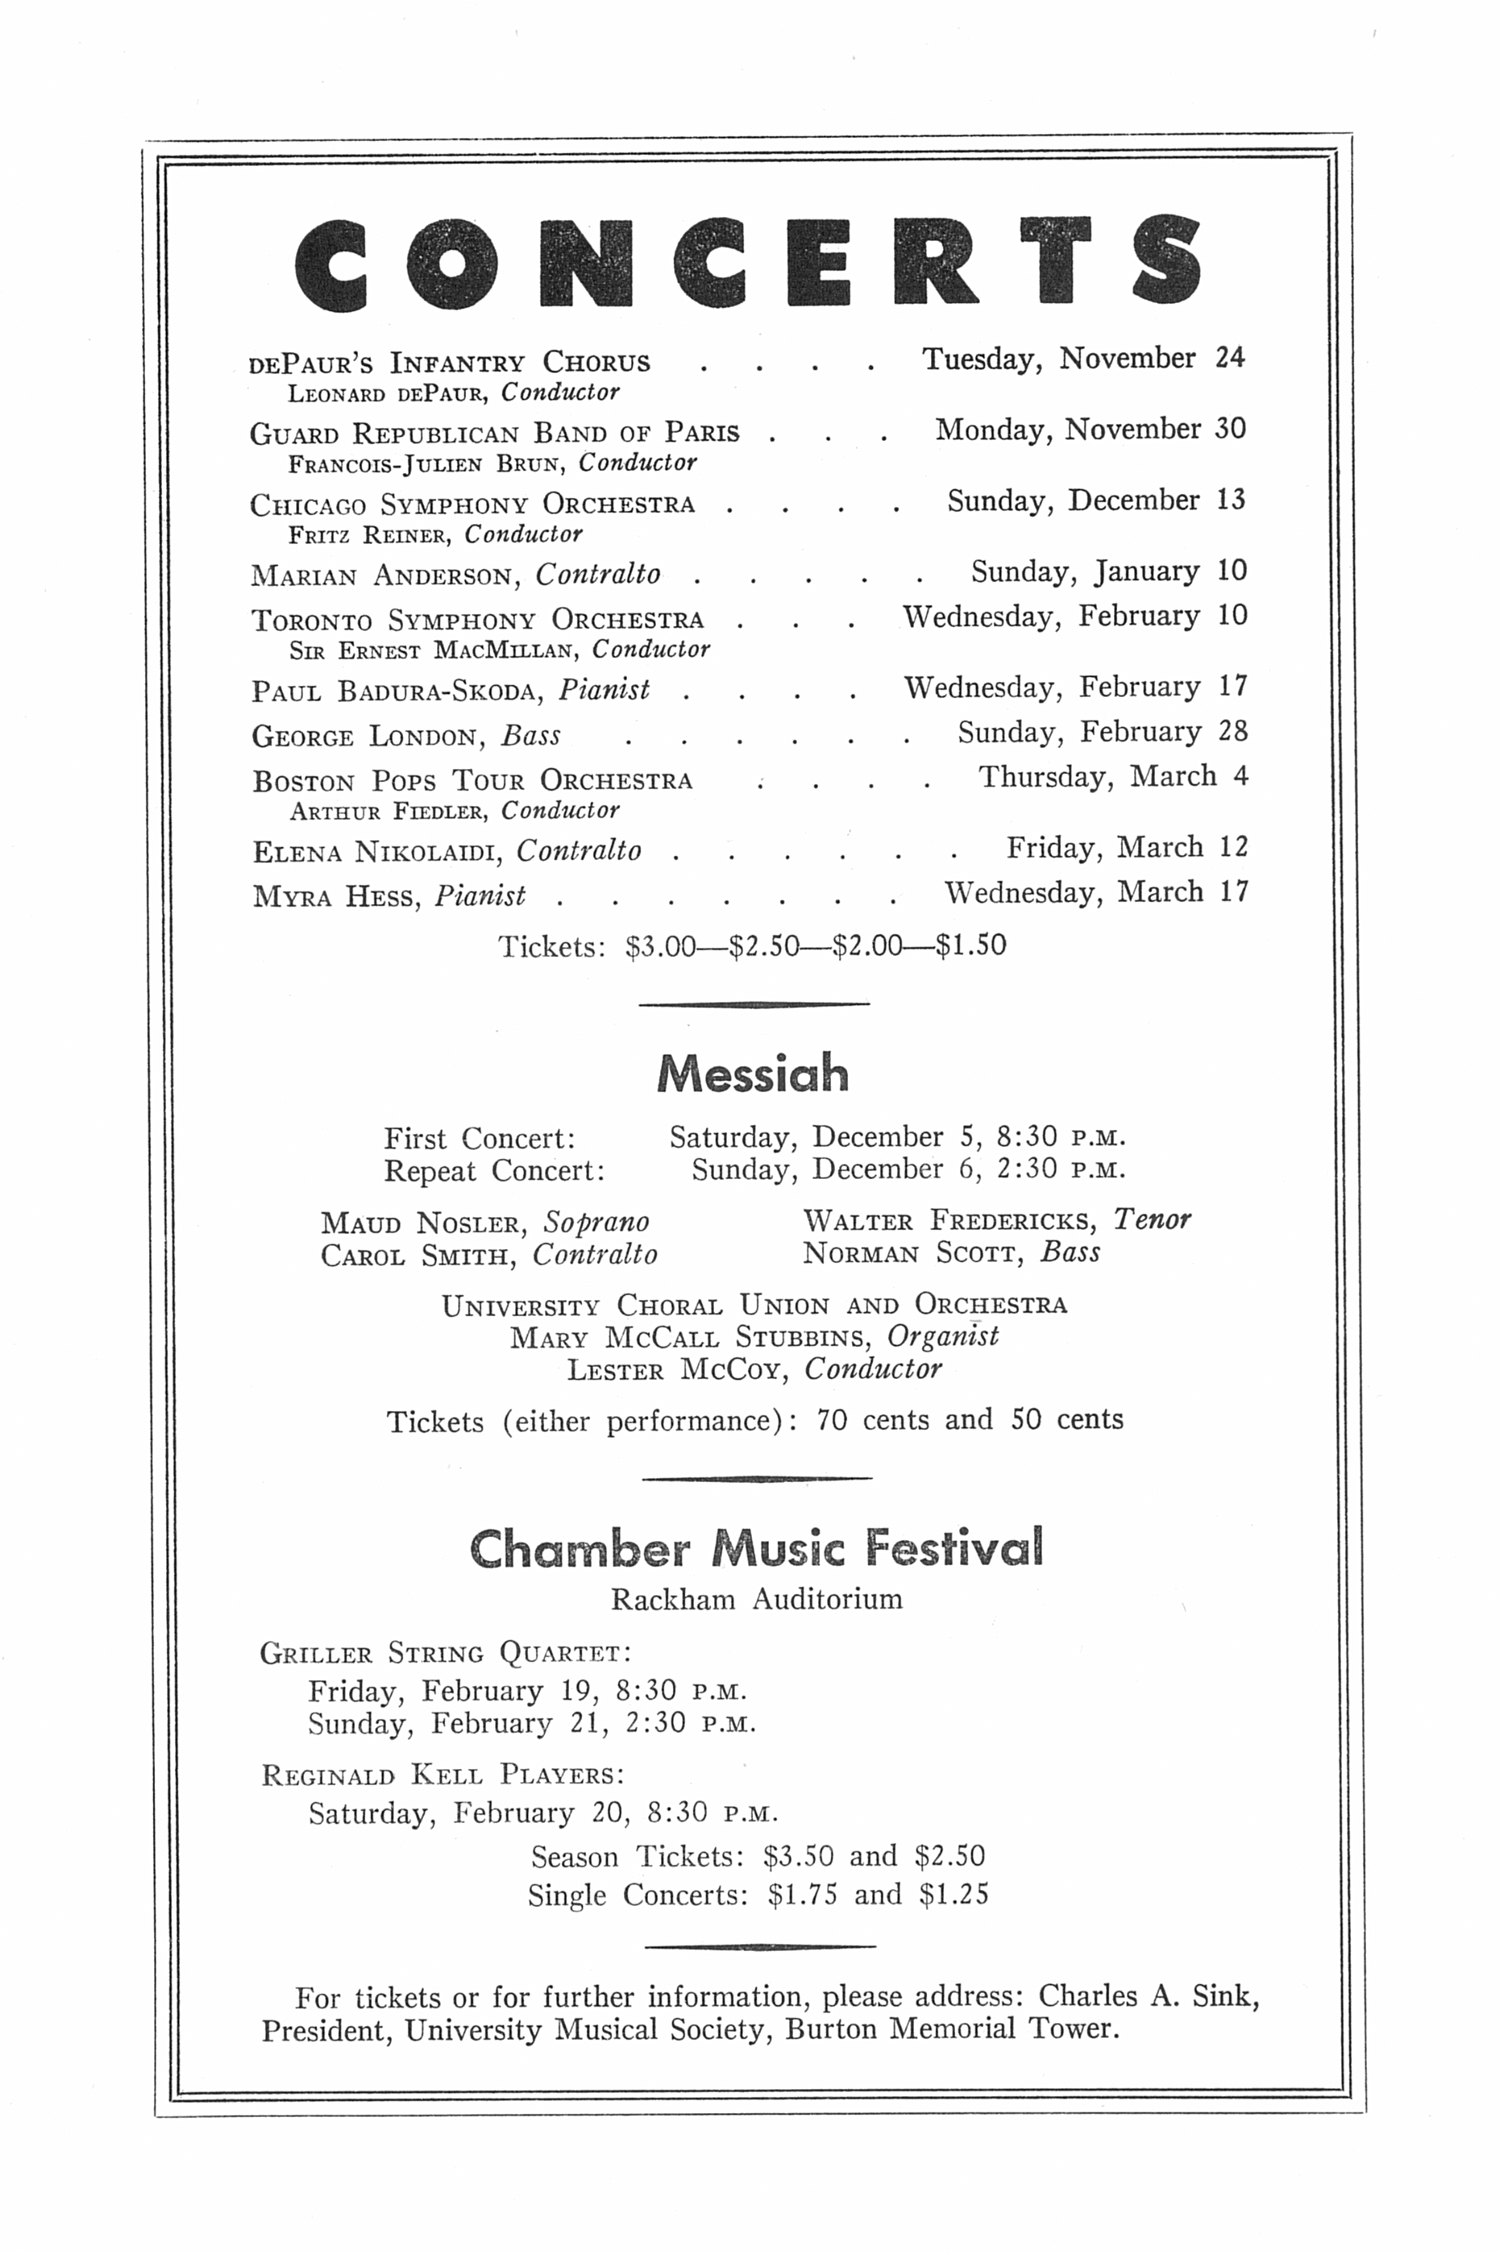 UMS Concert Program, November 8, 1953: Eighth Annual Extra Concert Series -- The Cleveland Orchestra image